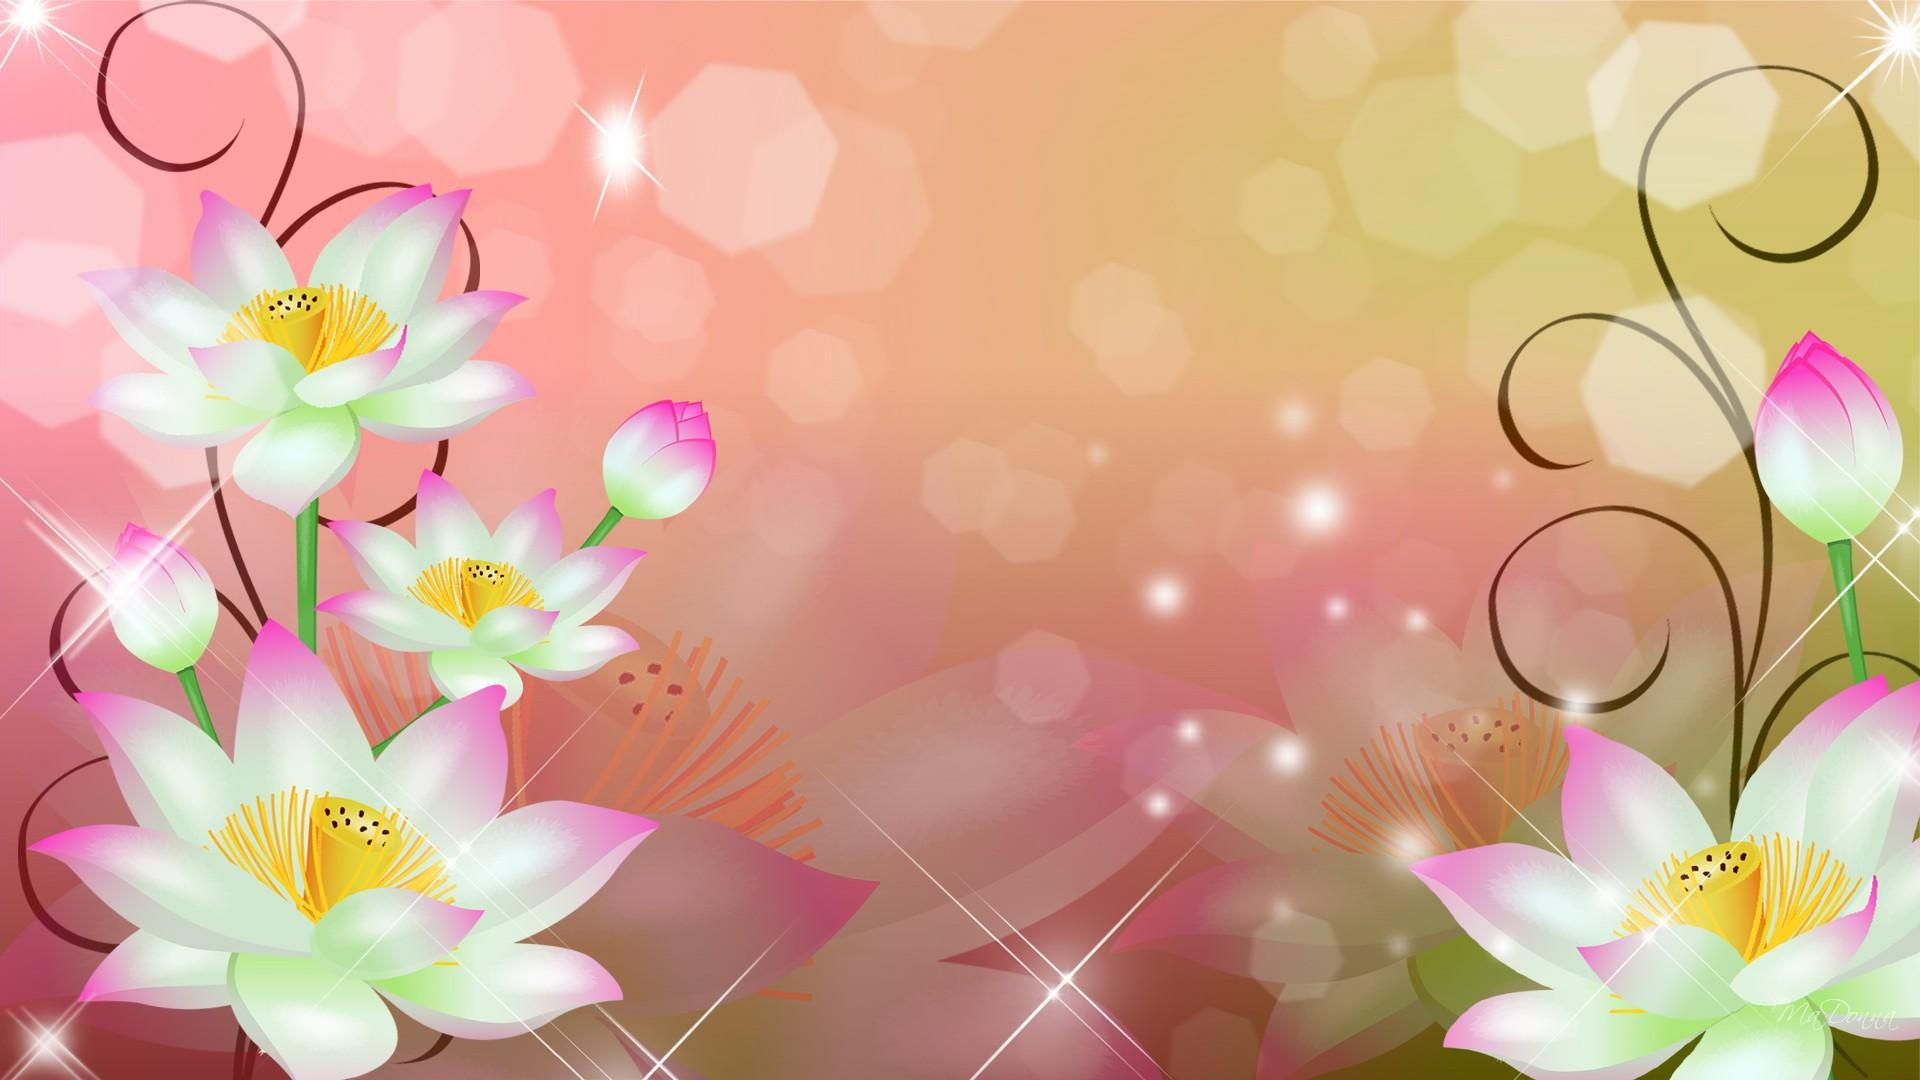 Flowers Background Wallpapers Hd.